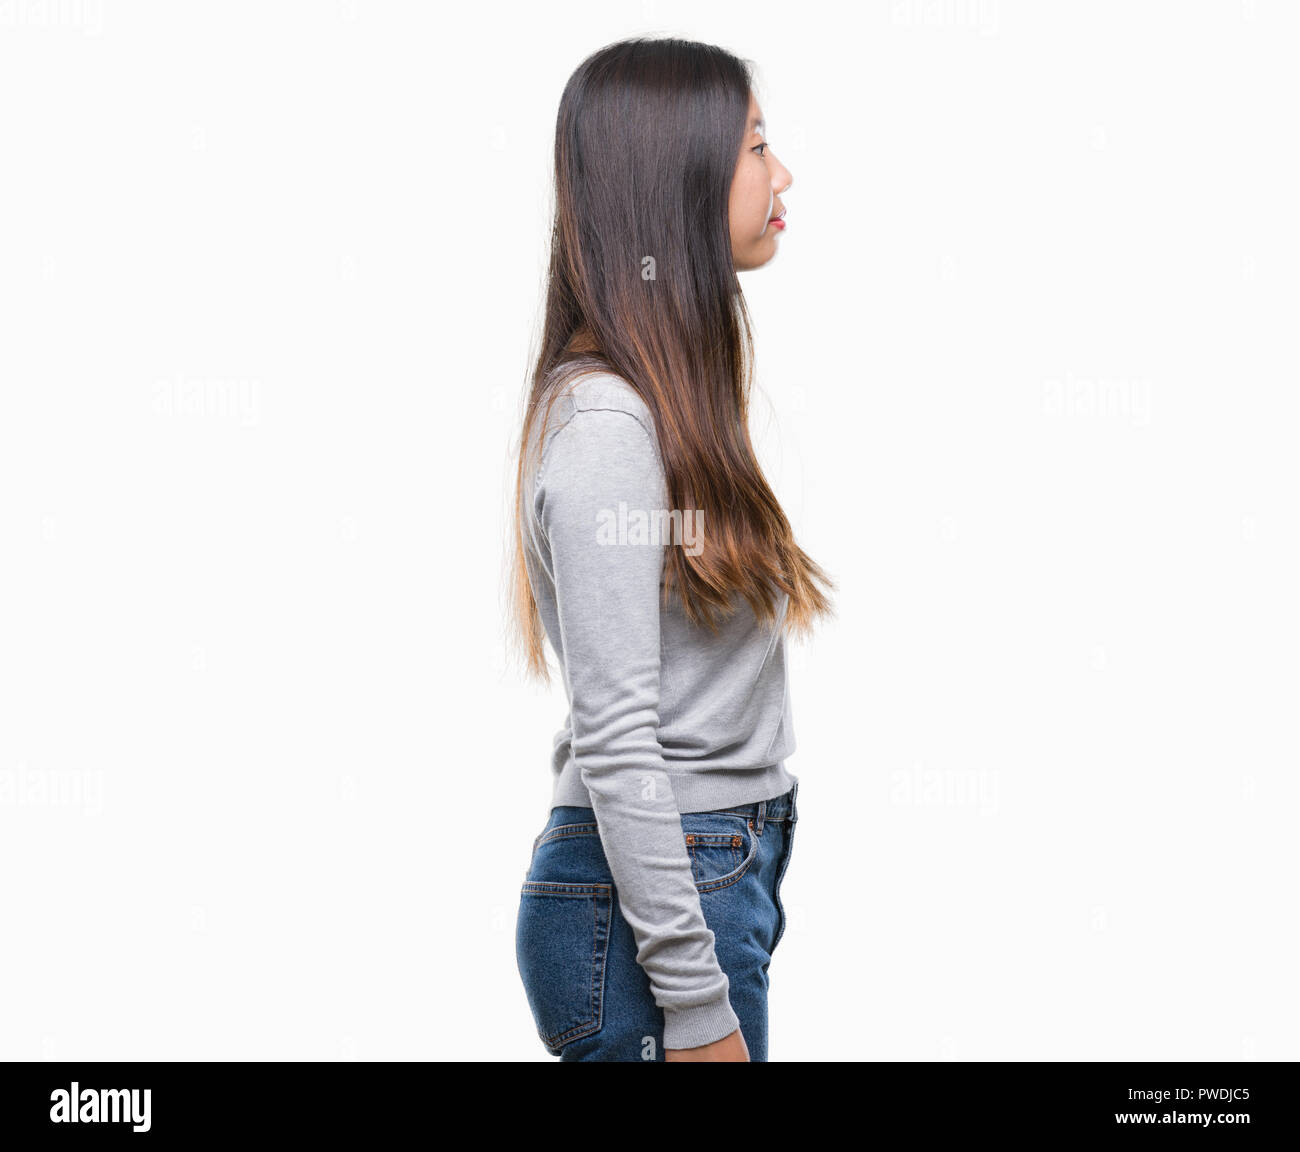 Side Profile Portrait Asian Girl High Resolution Stock Photography And Images Alamy